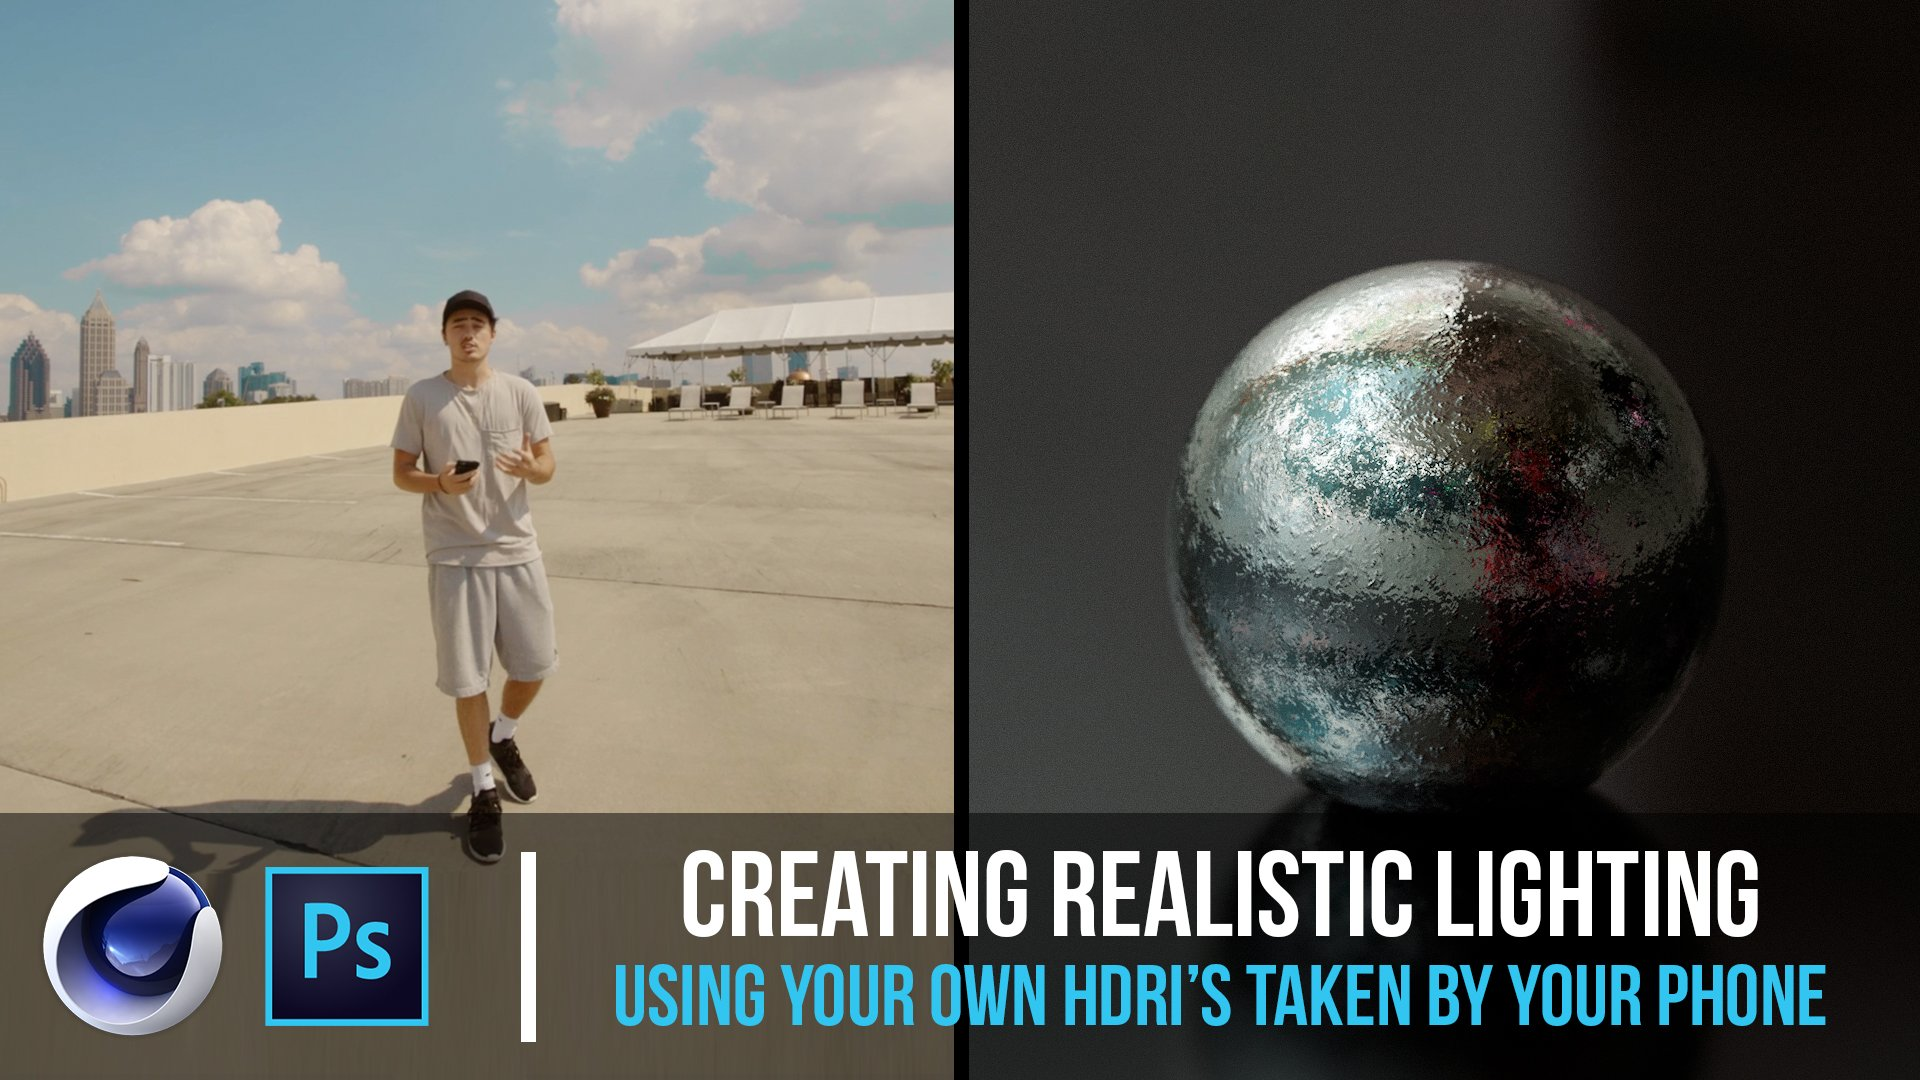 Creating Realistic Lighting Using Your Own HDRI's - Cinema 4D Tutorial